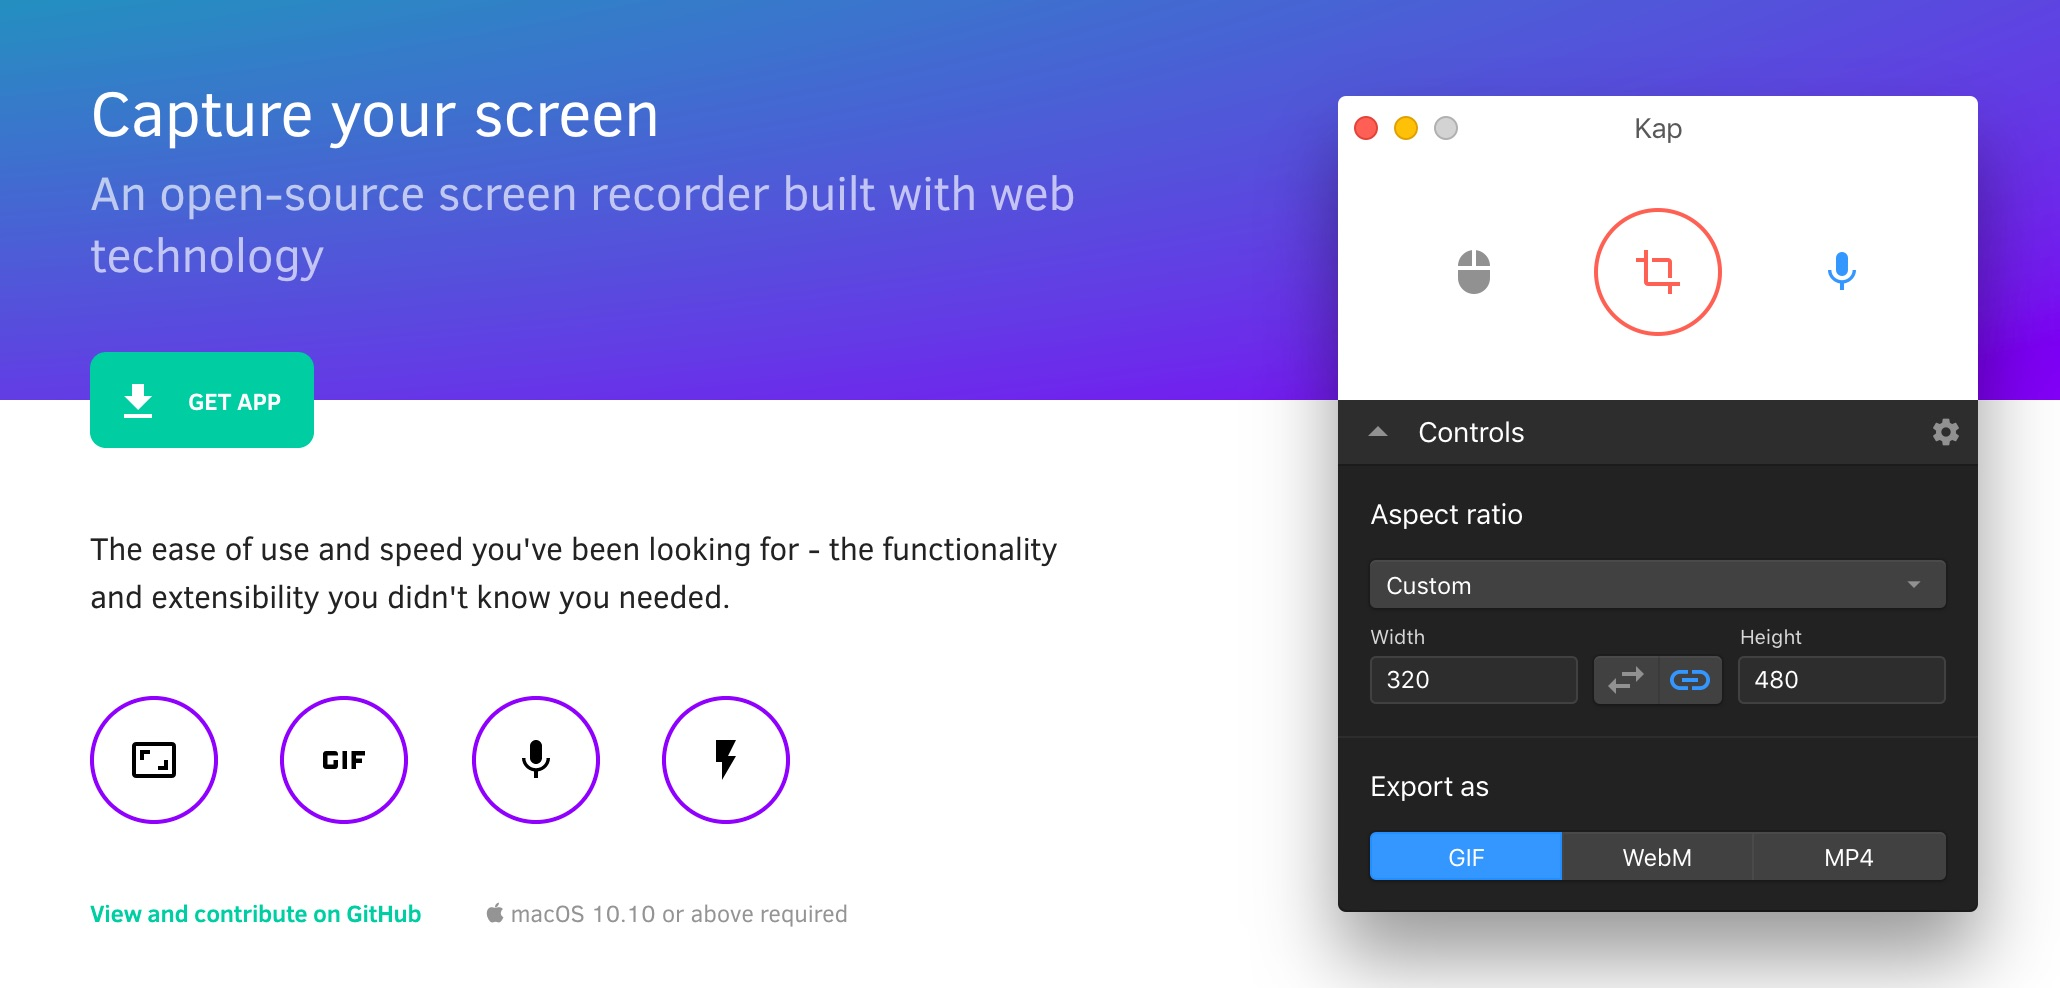 Kap is a lightweight, open-source screen recording app.